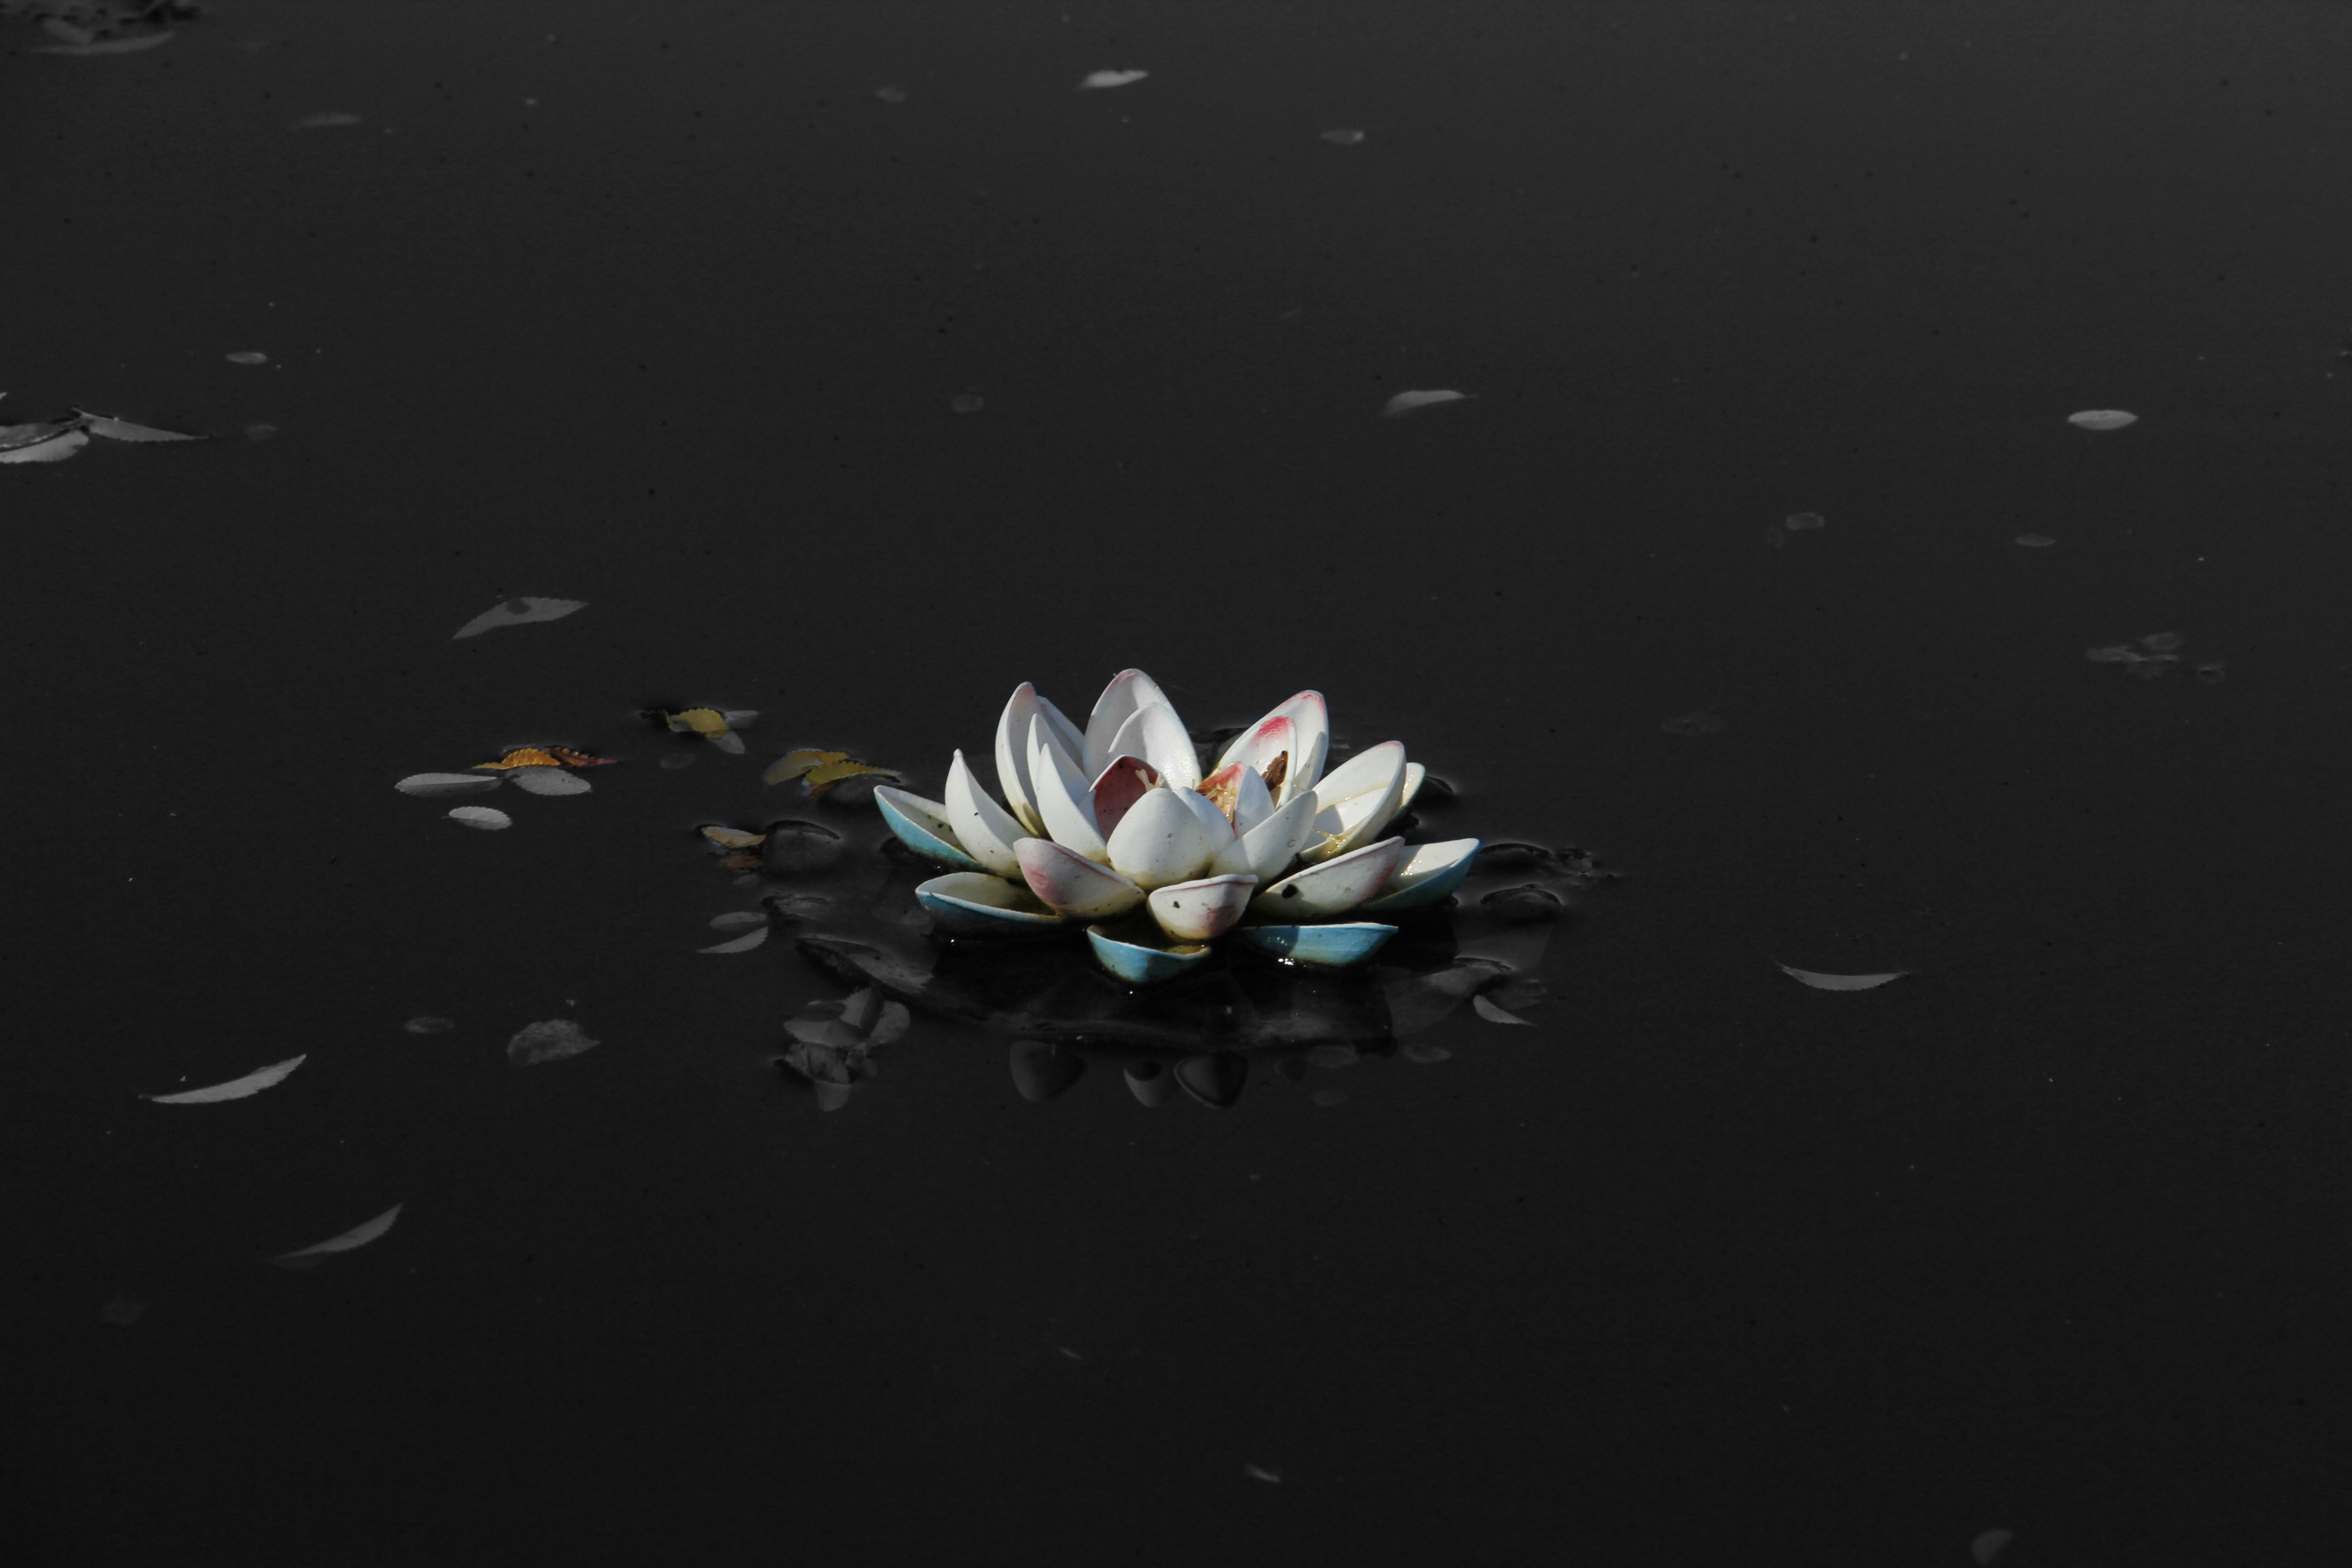 Black Lotus Flower Wallpapers Hd Resolution Natures Wallpapers